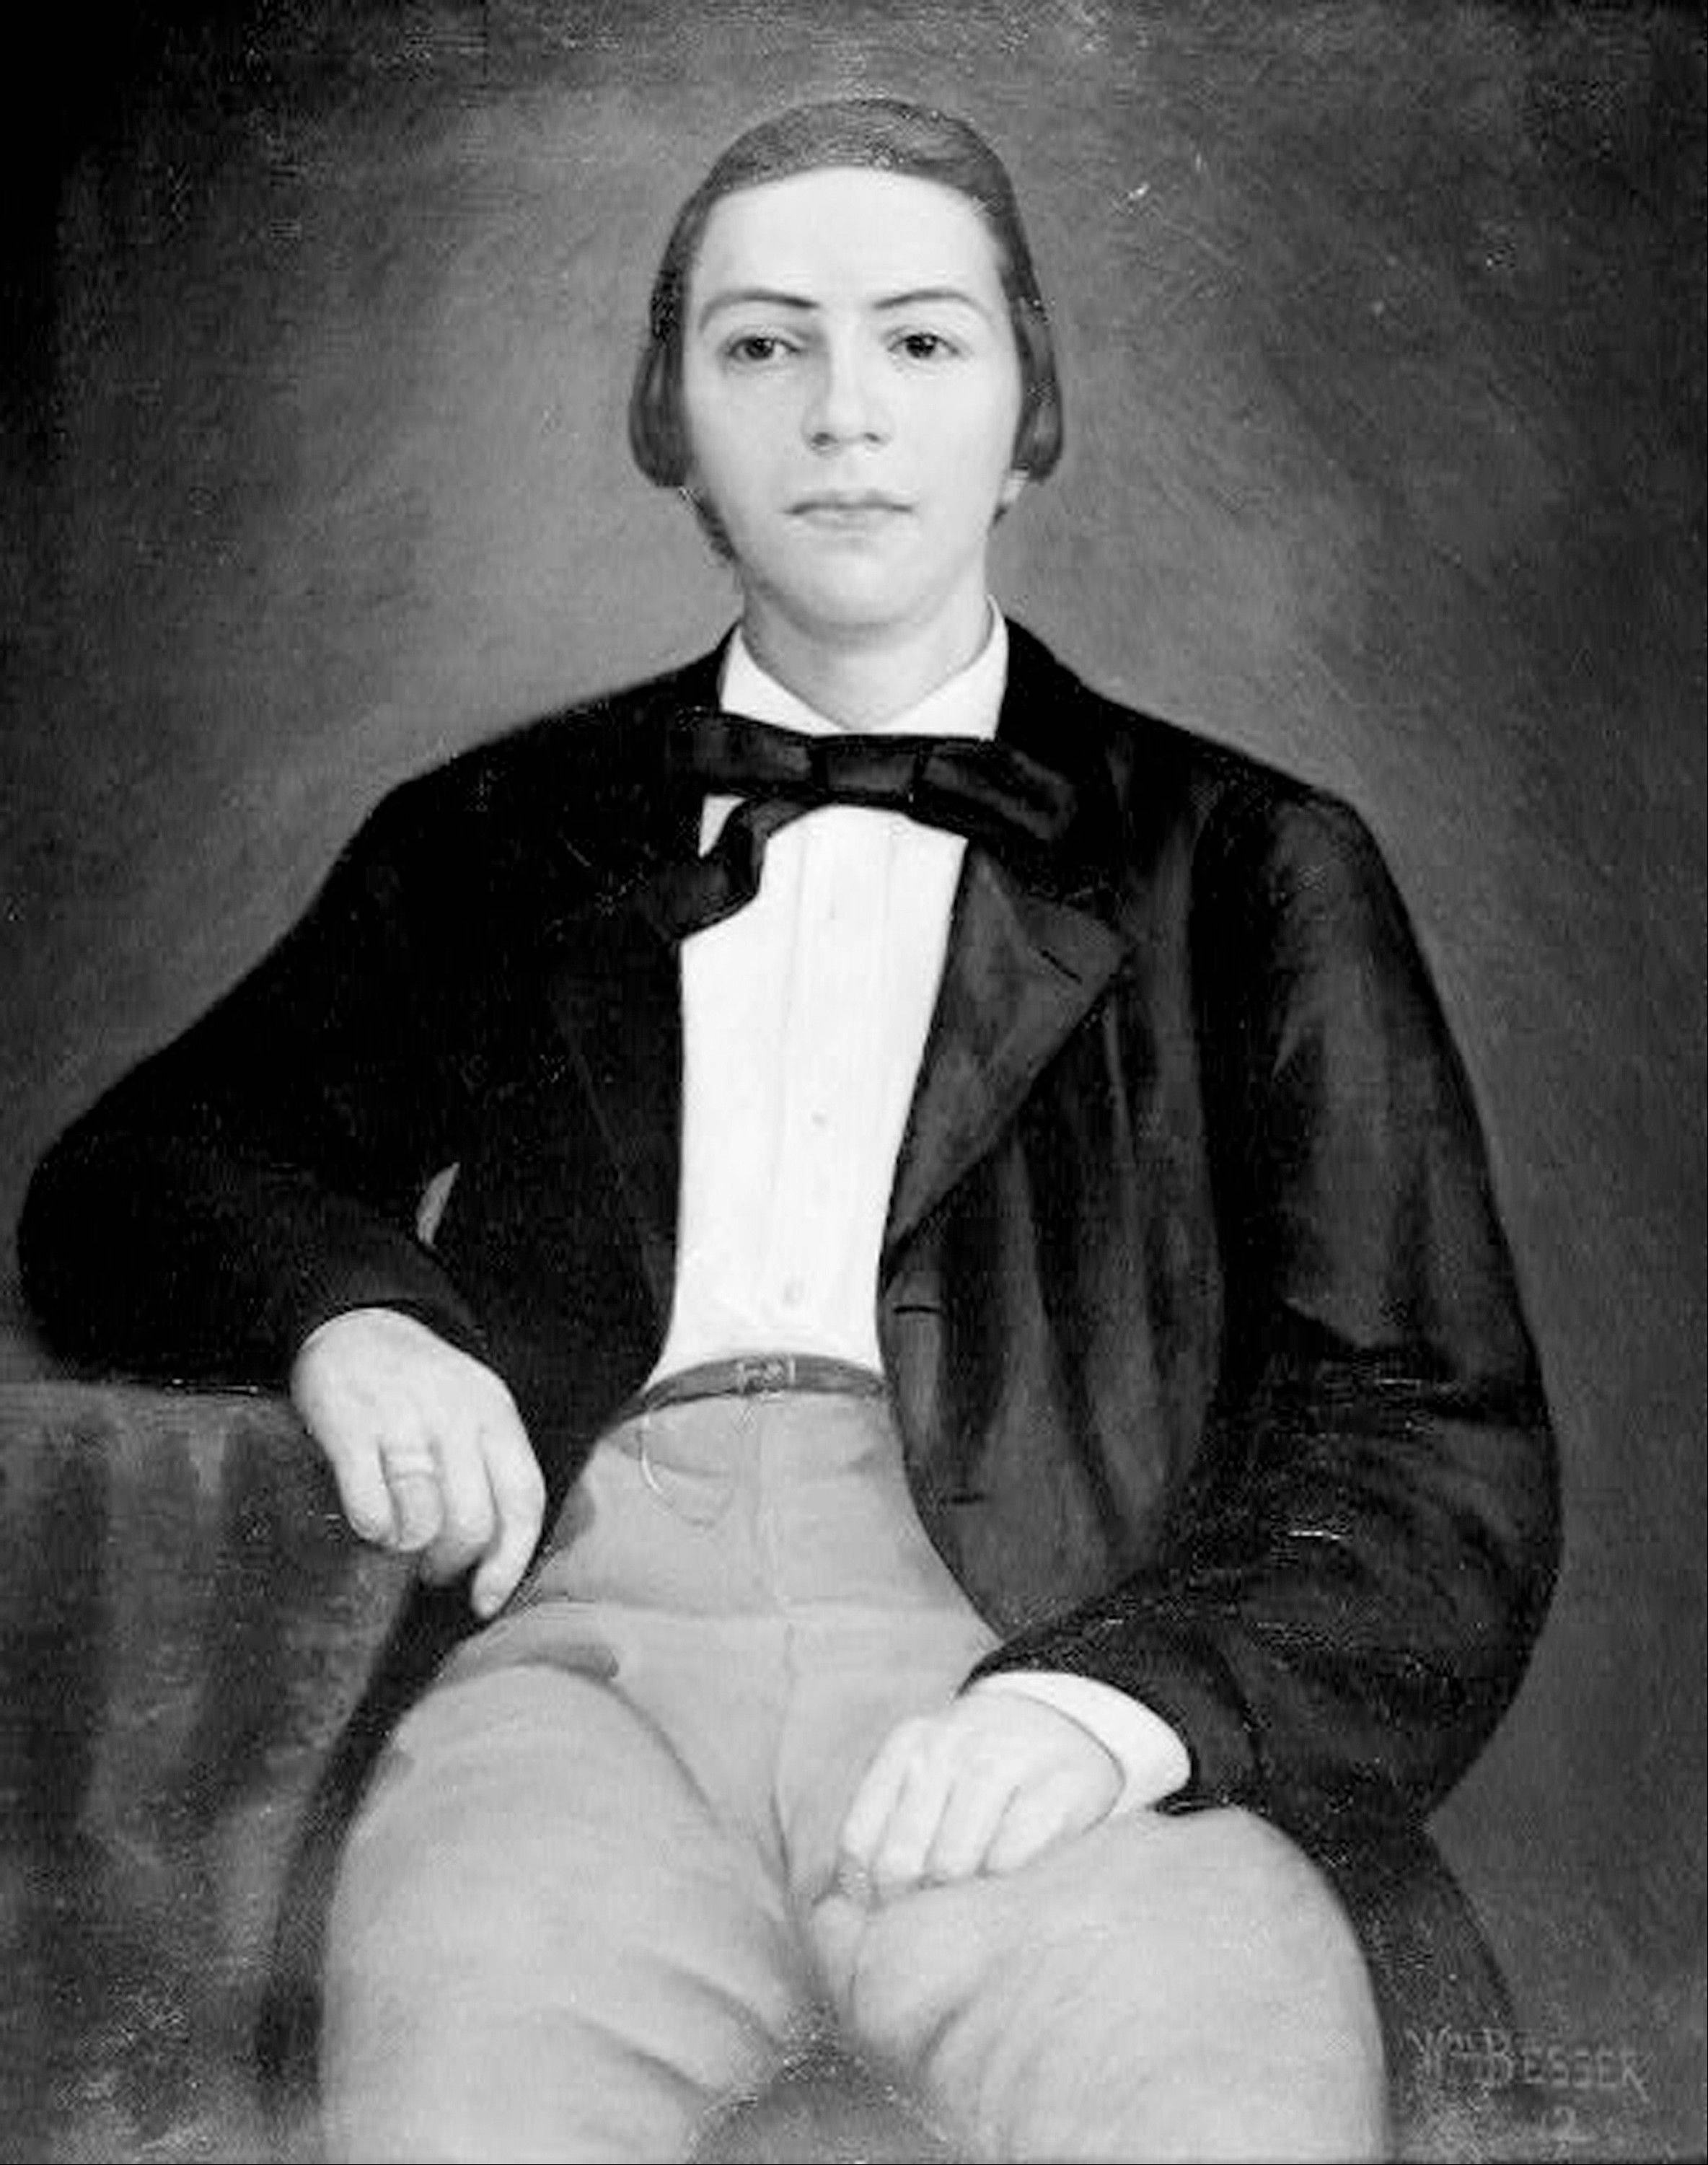 David O. Dodd was a teenage spy who chose to hang rather than betray the Confederate cause.